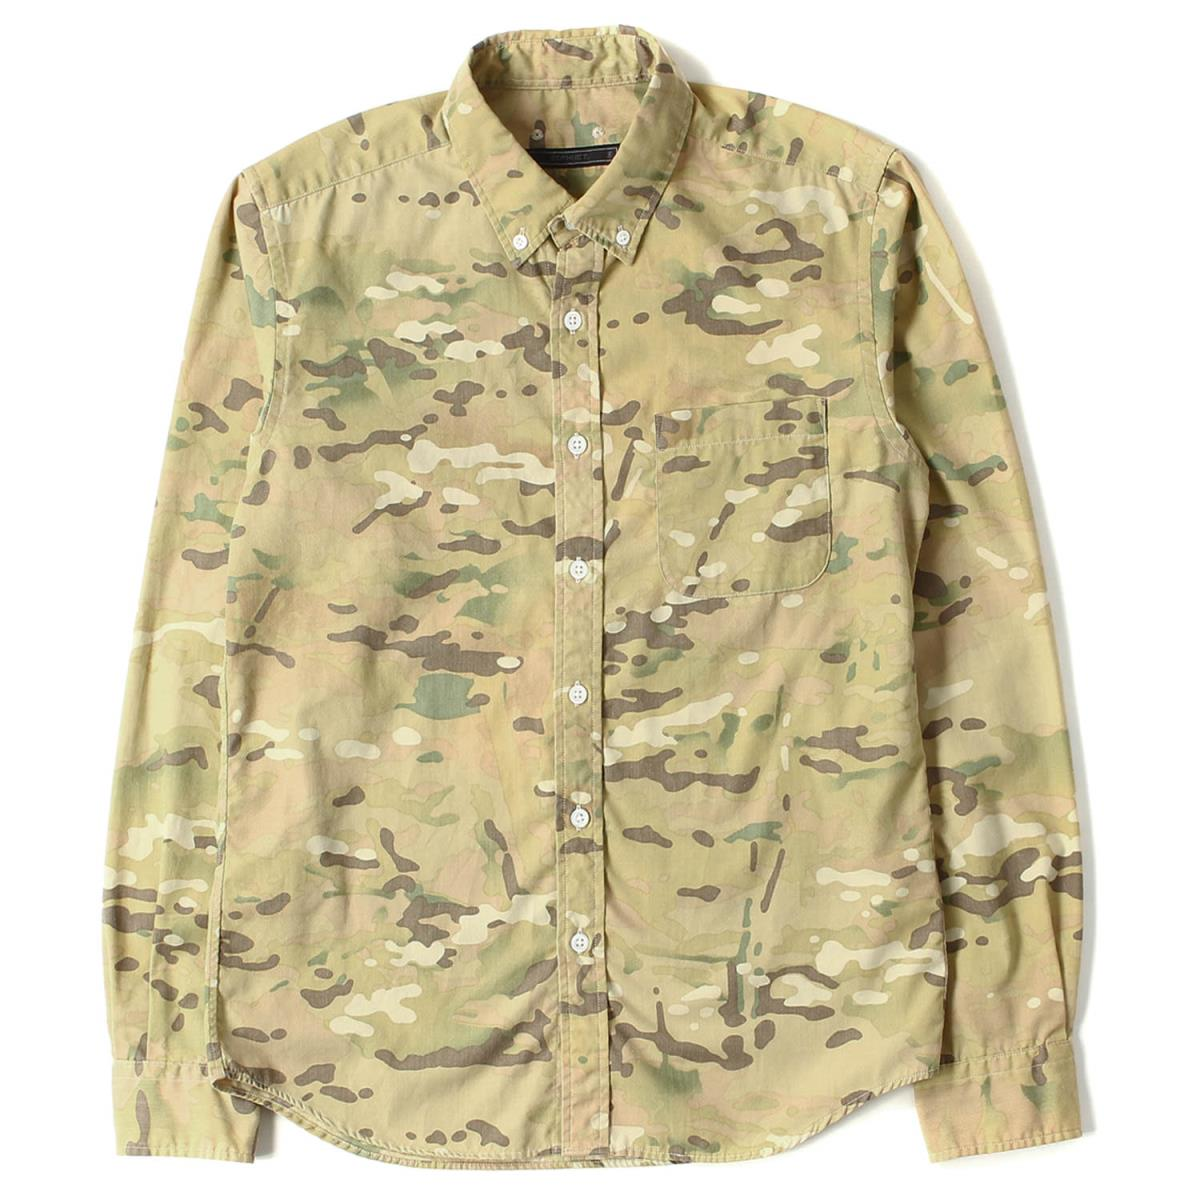 454c23bf2a SOPHNET. (ソフネット) 14S S multi-cam camouflage button-down shirt (CAMOUFLAGE  BUTTON DOWN SHIRT) multi-cam S